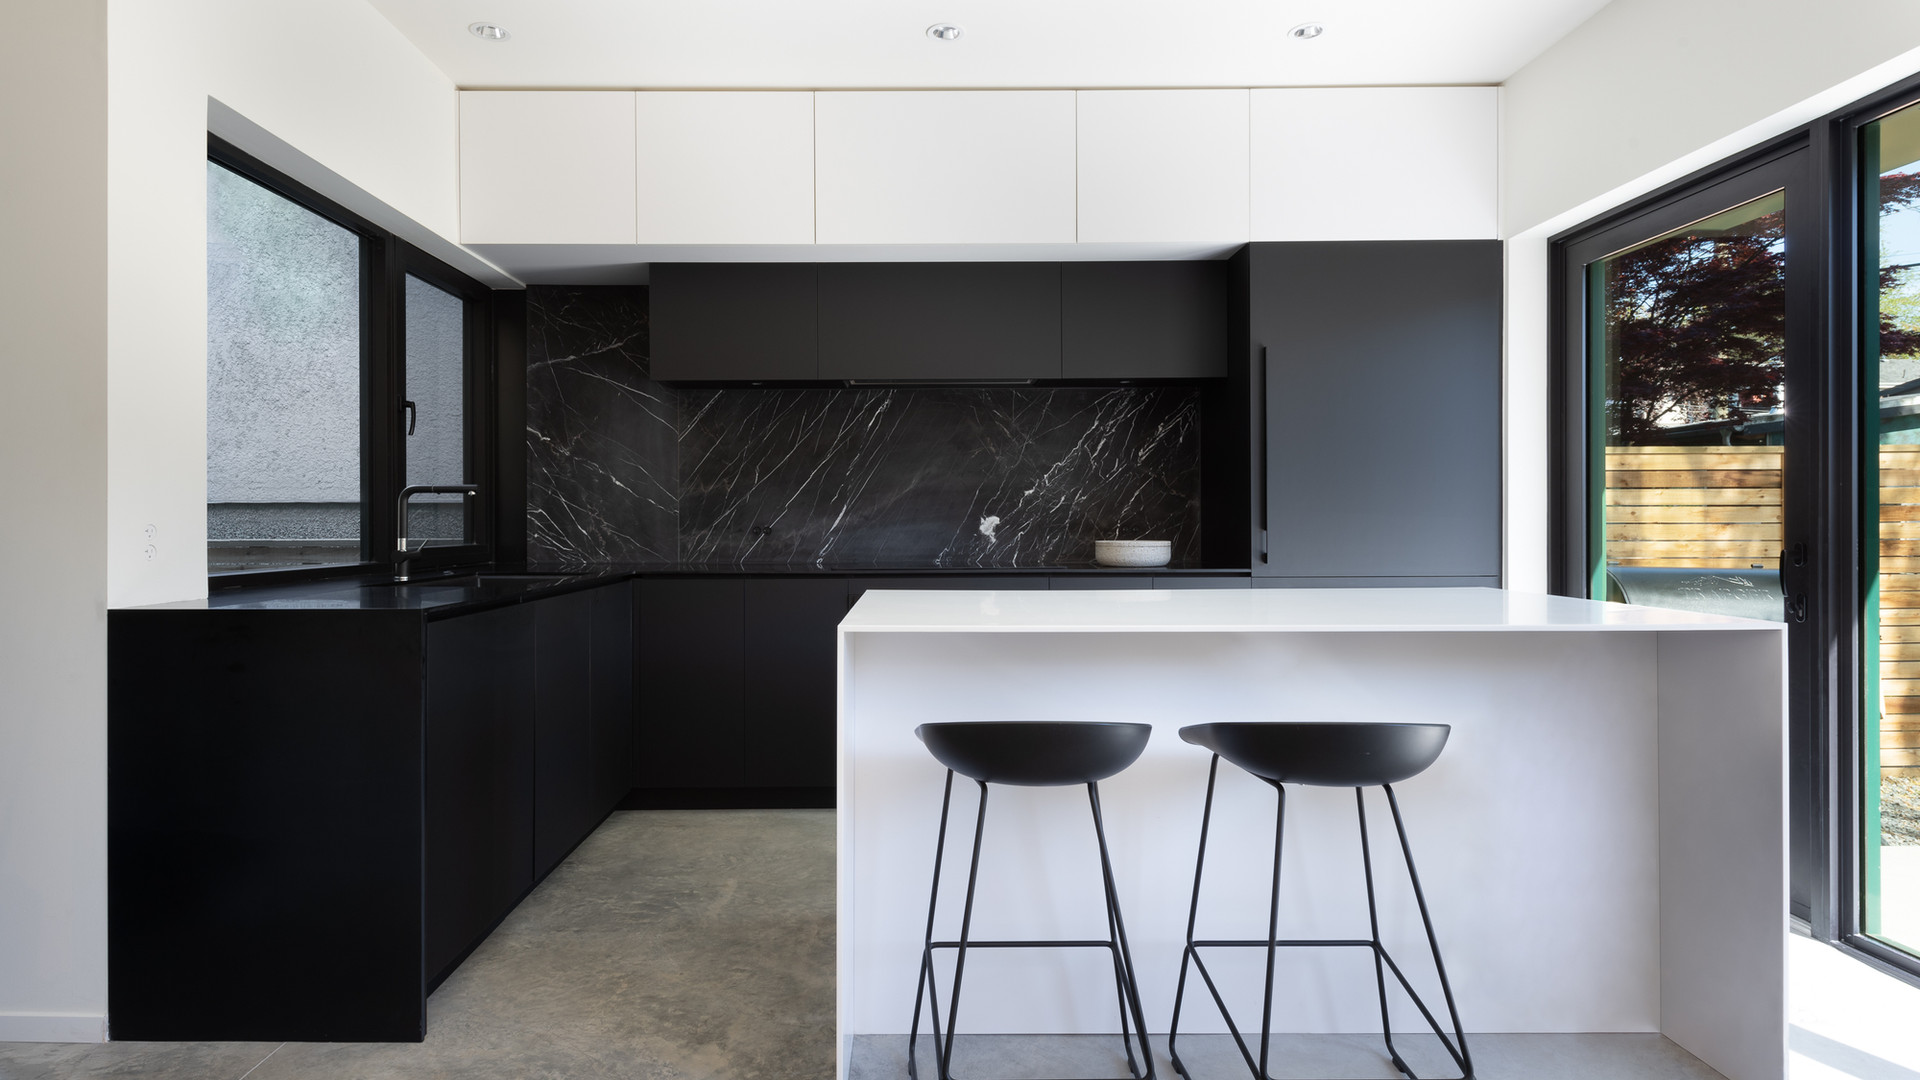 modern black and white kitchen with marble backsplash and hay stools by untitled design agency